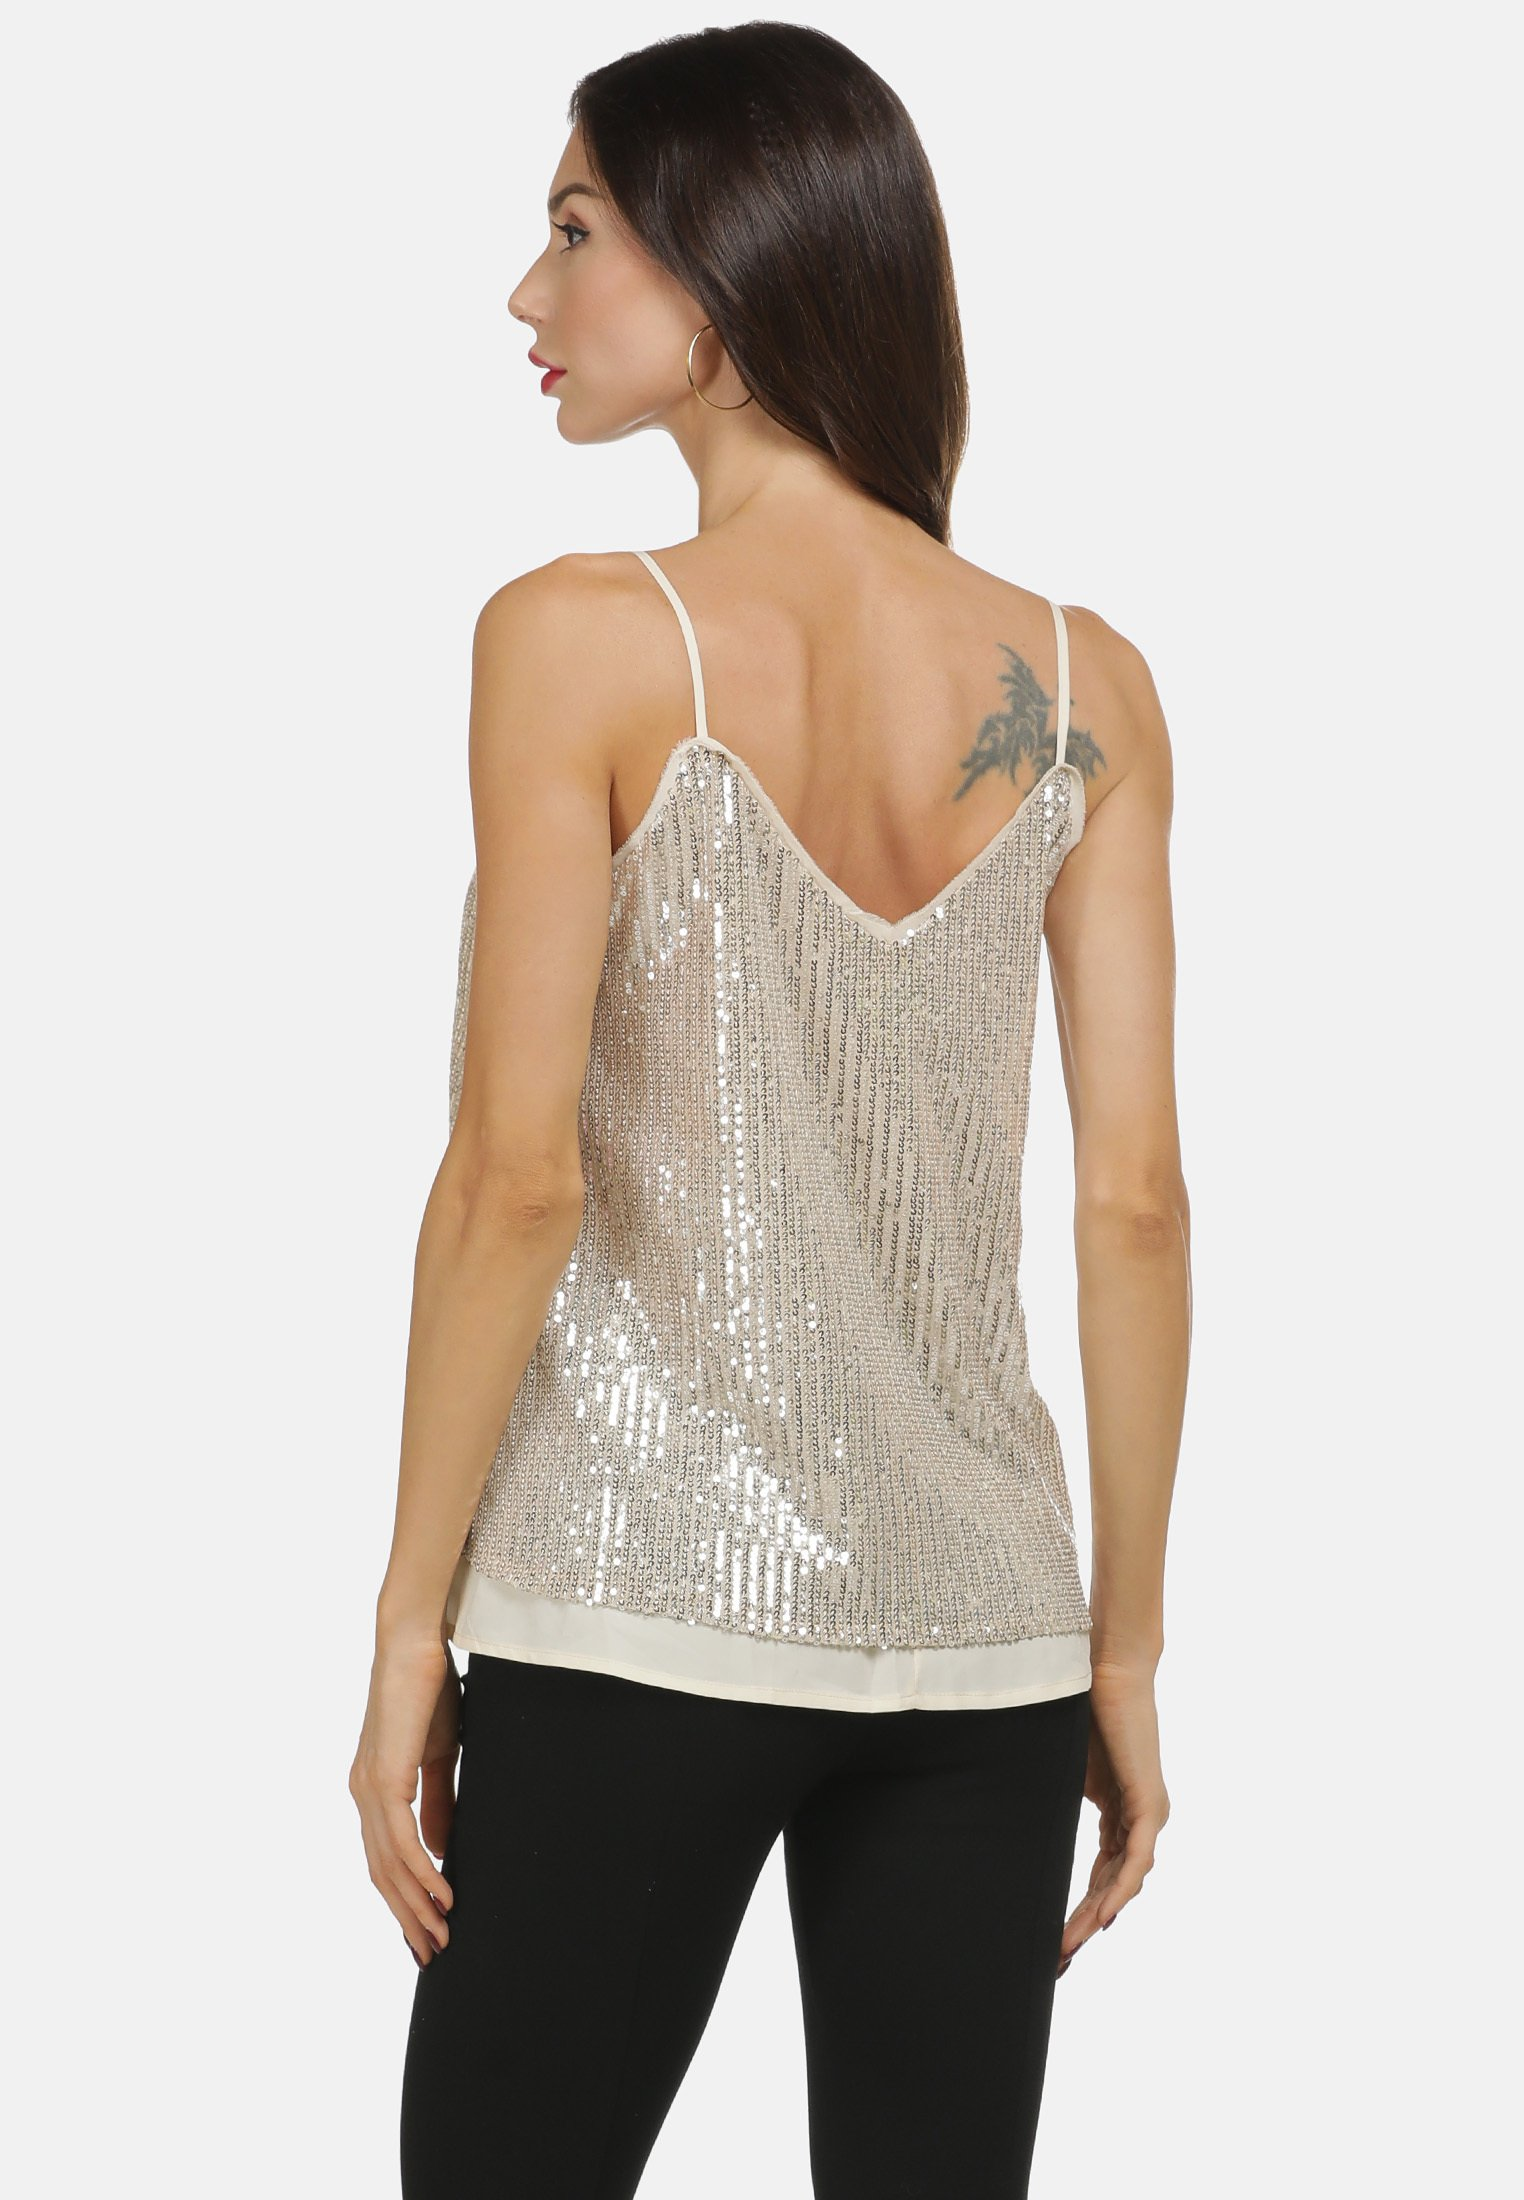 Low Cost Women's Clothing faina TOP Top champagner IEO37ln7Q